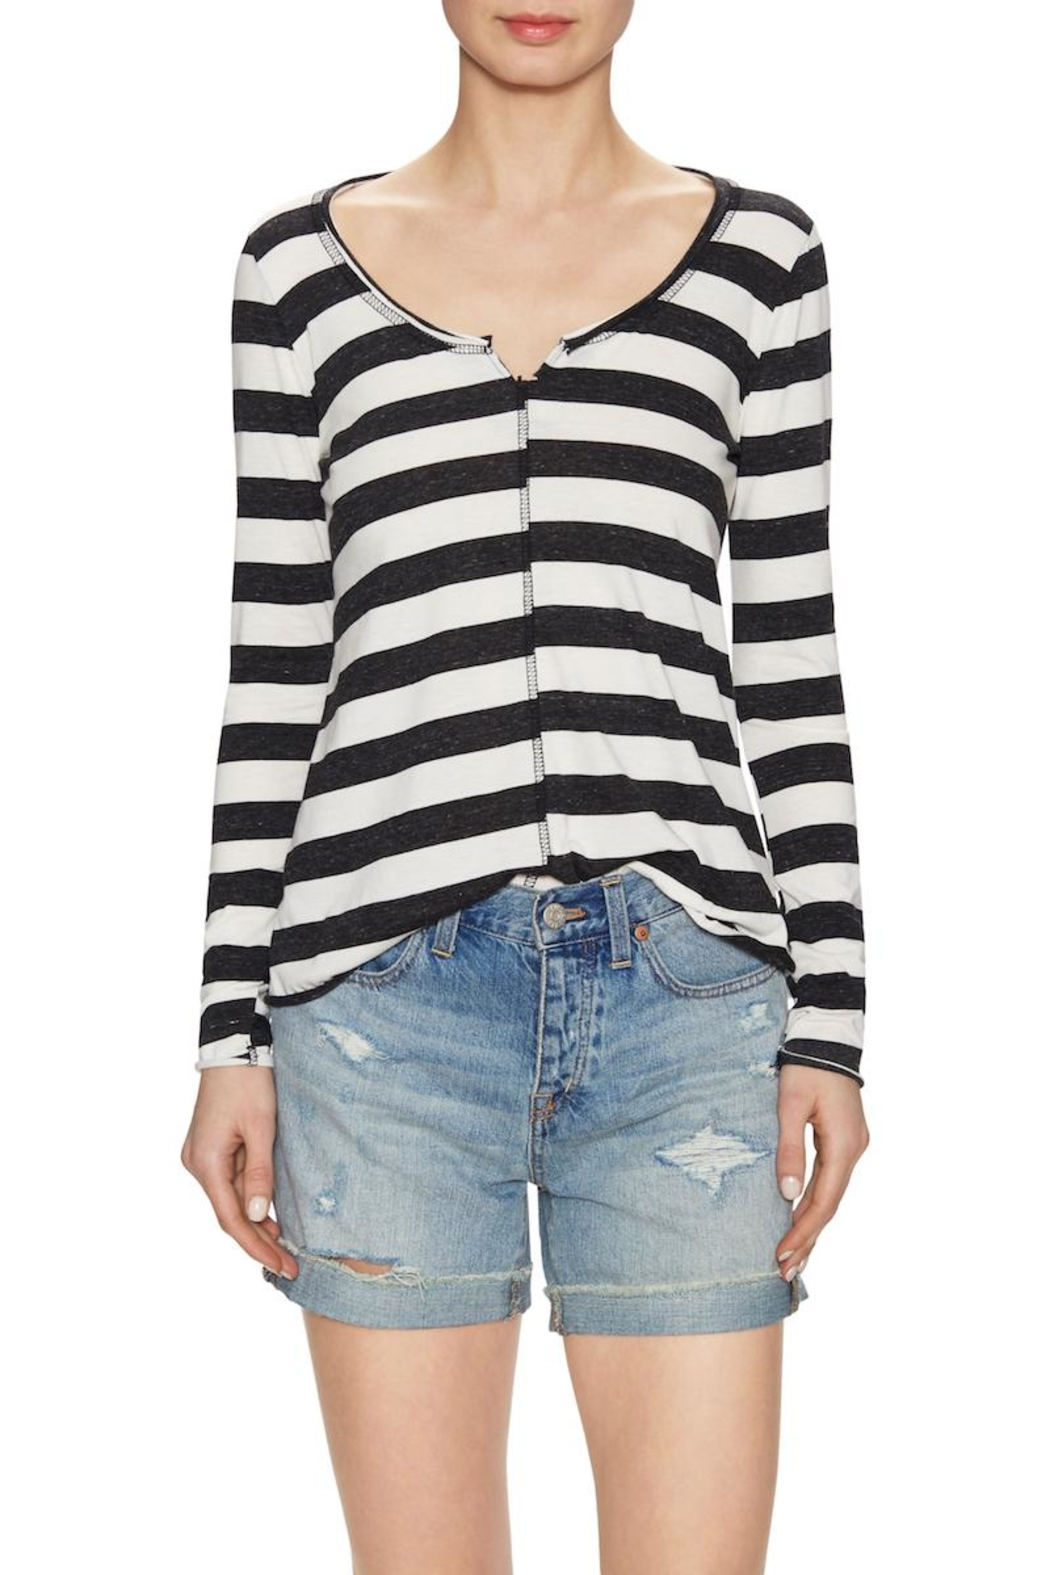 NYTT Striped Top - Front Cropped Image